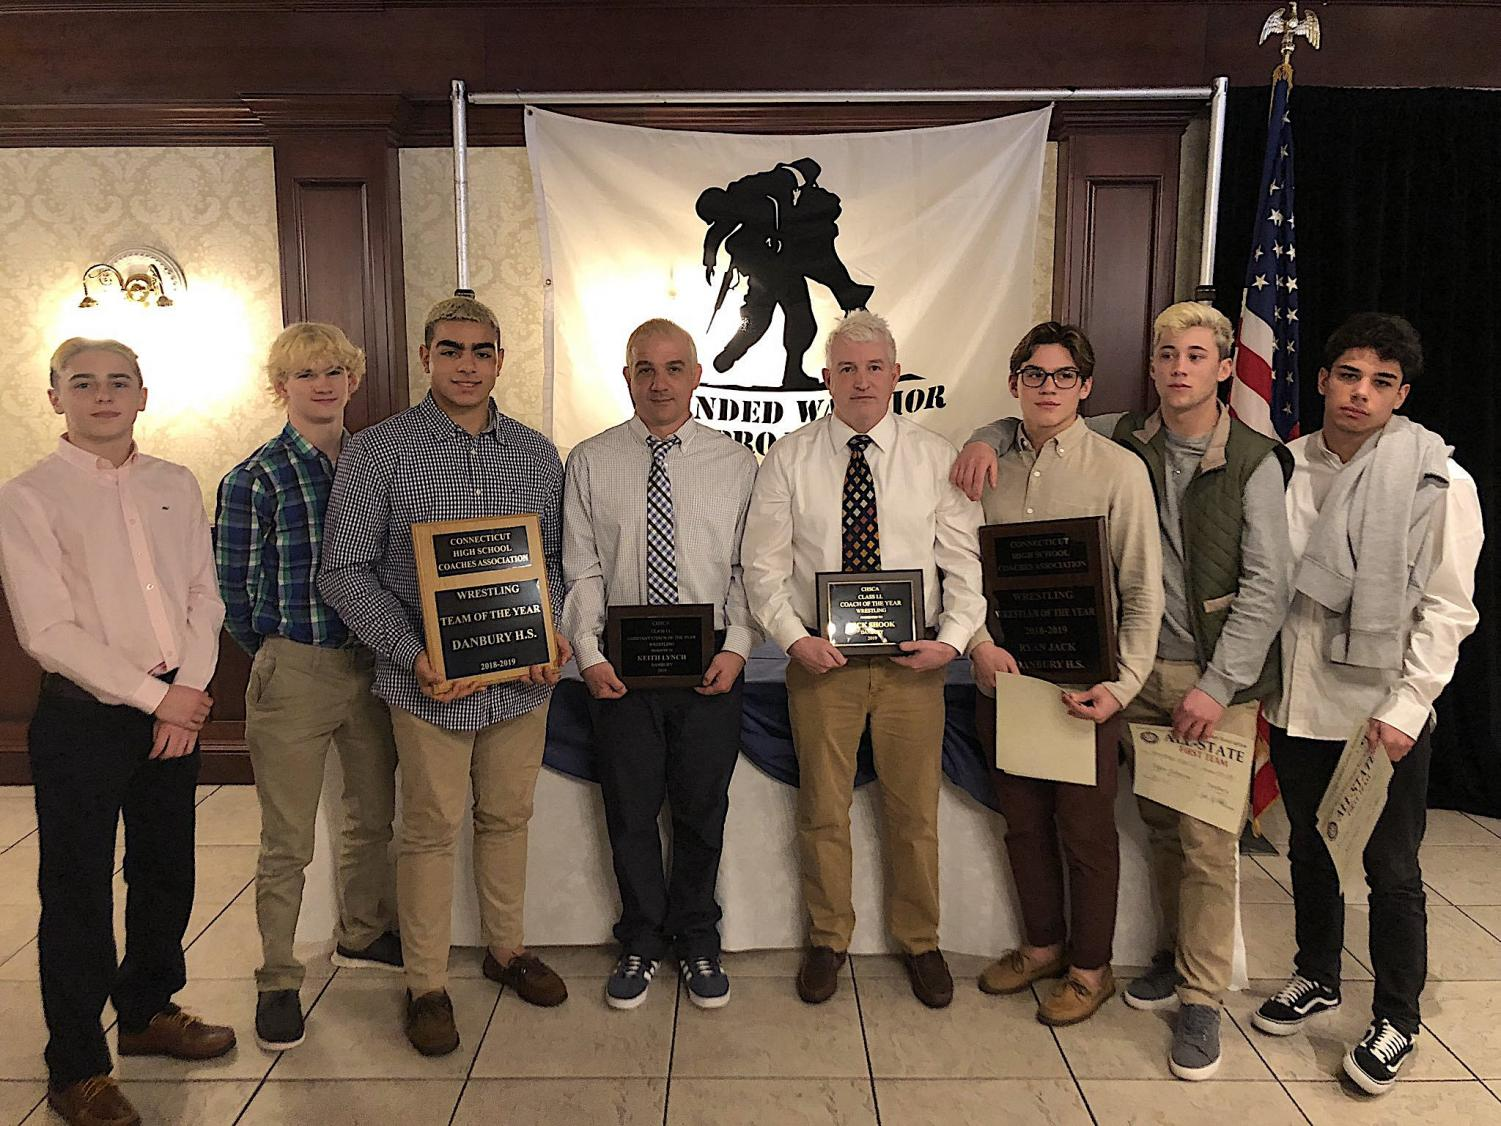 The Connecticut High School Coaches Association awarded the following to this year's wrestling team: Team of the Year, Wrestler of the Year to Ryan Jack, and Class LL Coaches of the Year to Richard Shook and Keith Lynch.